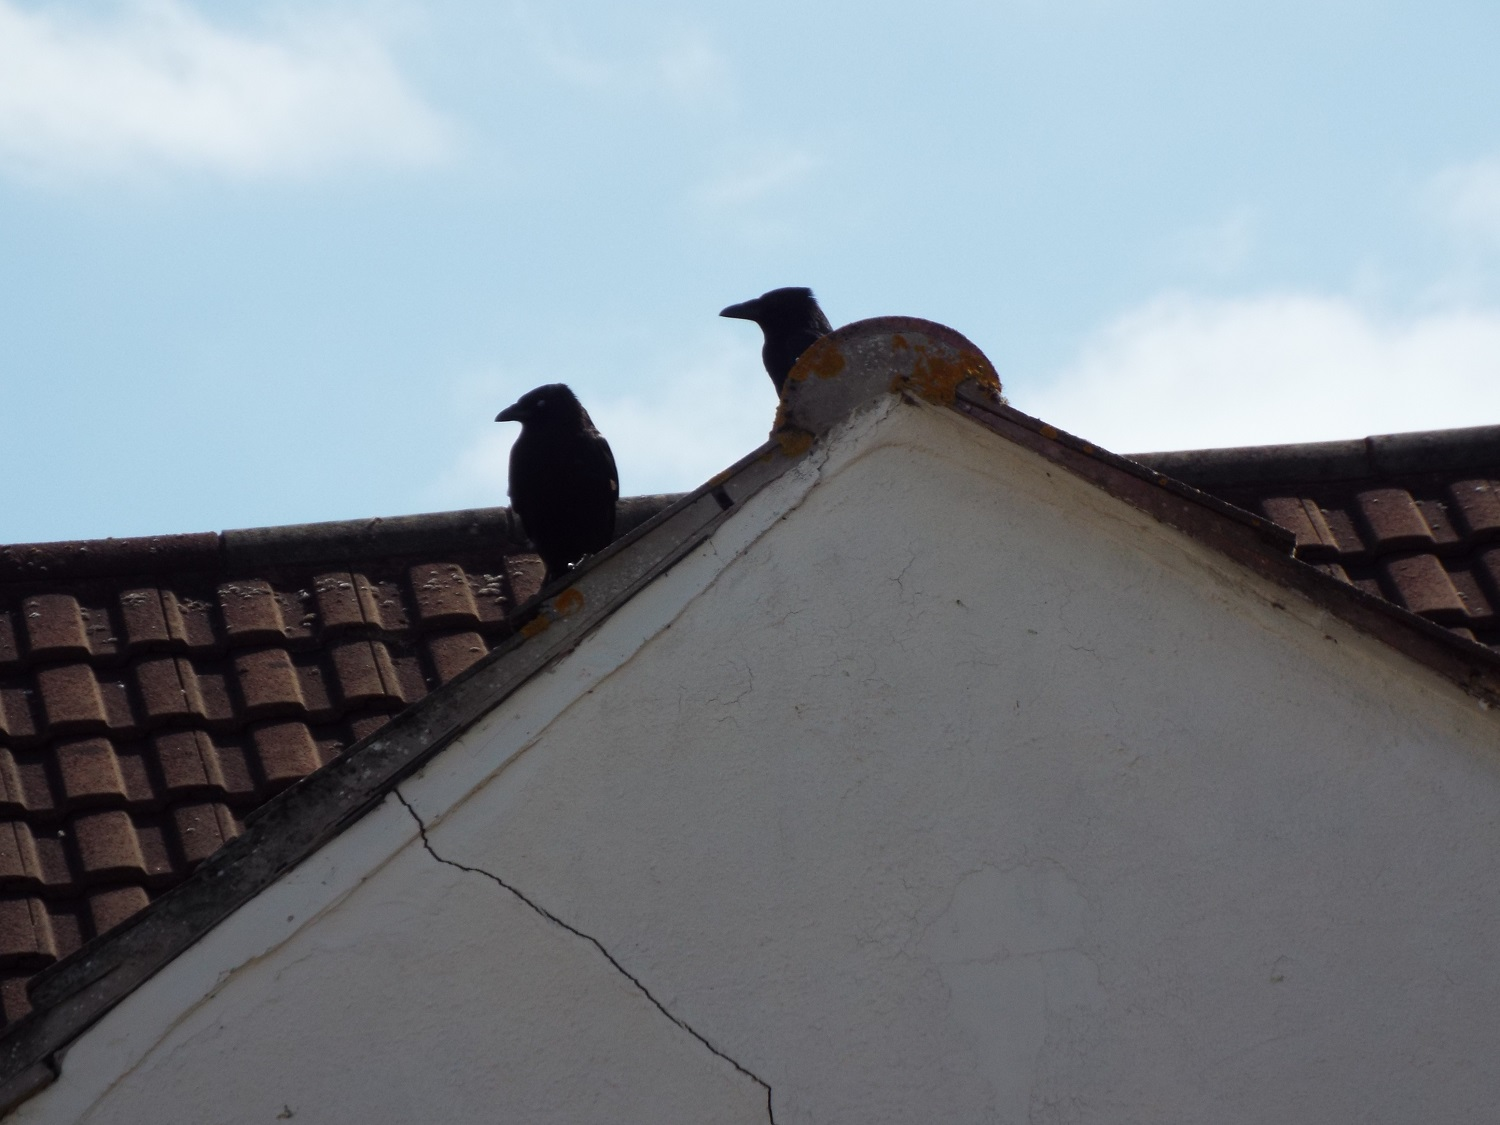 They're watching their fledgling